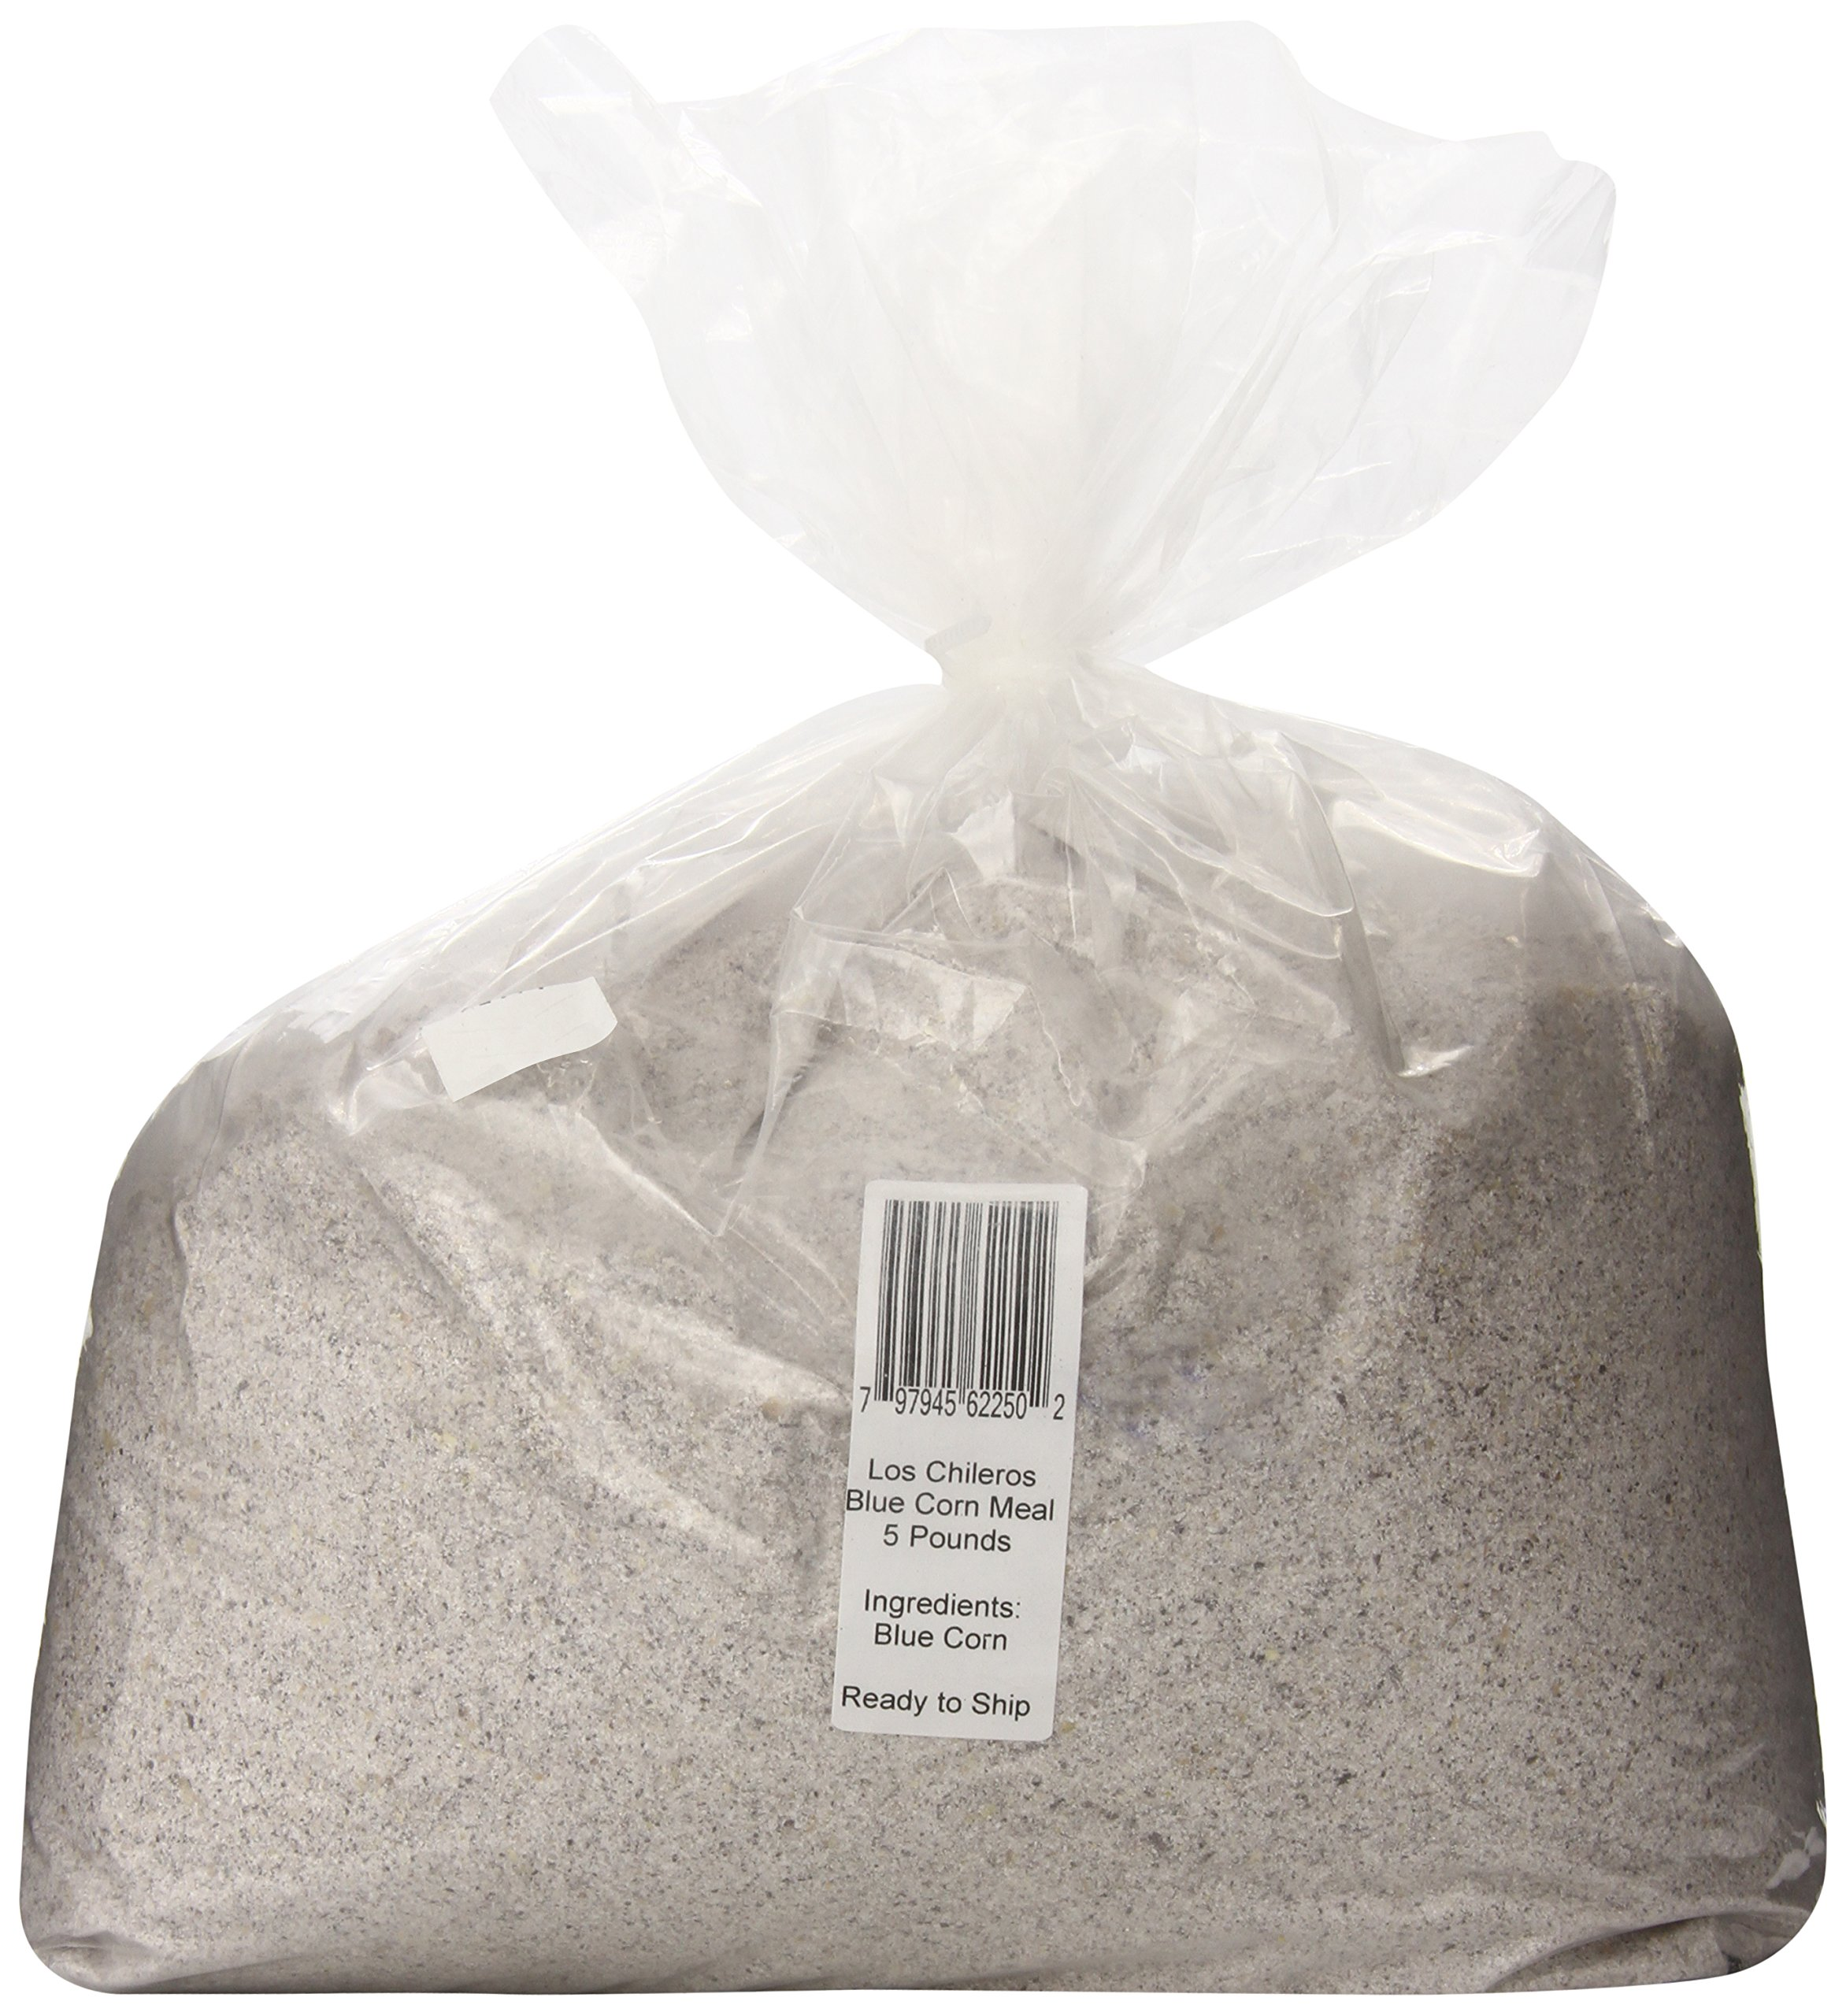 Los Chileros Blue Corn Meal, 5 Pound